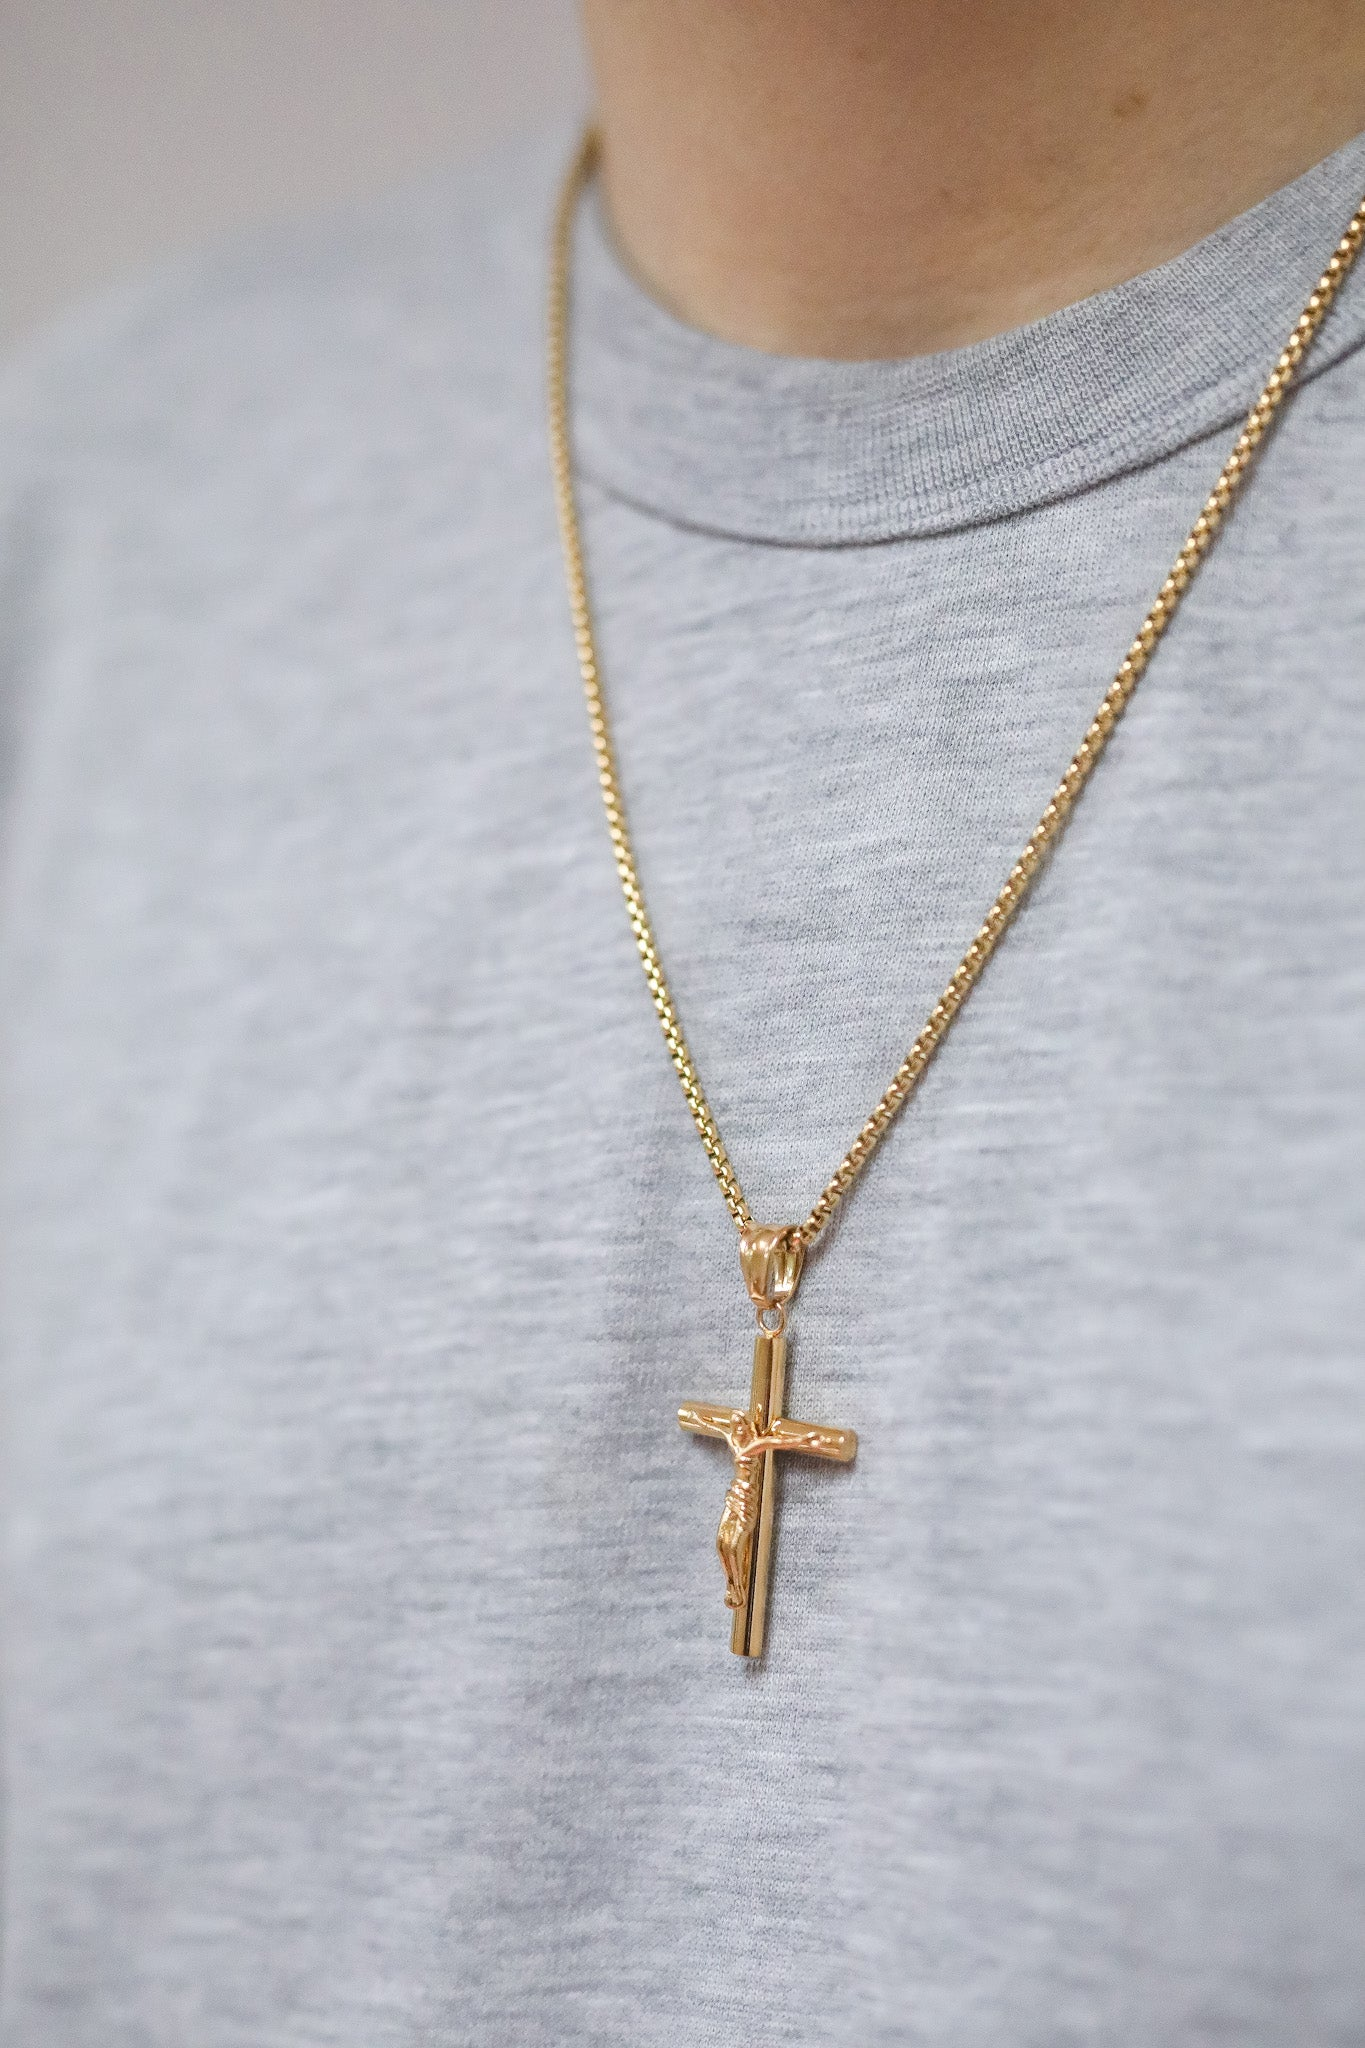 ARLO London gold stainless steel crucifix pendant jewellery accessory